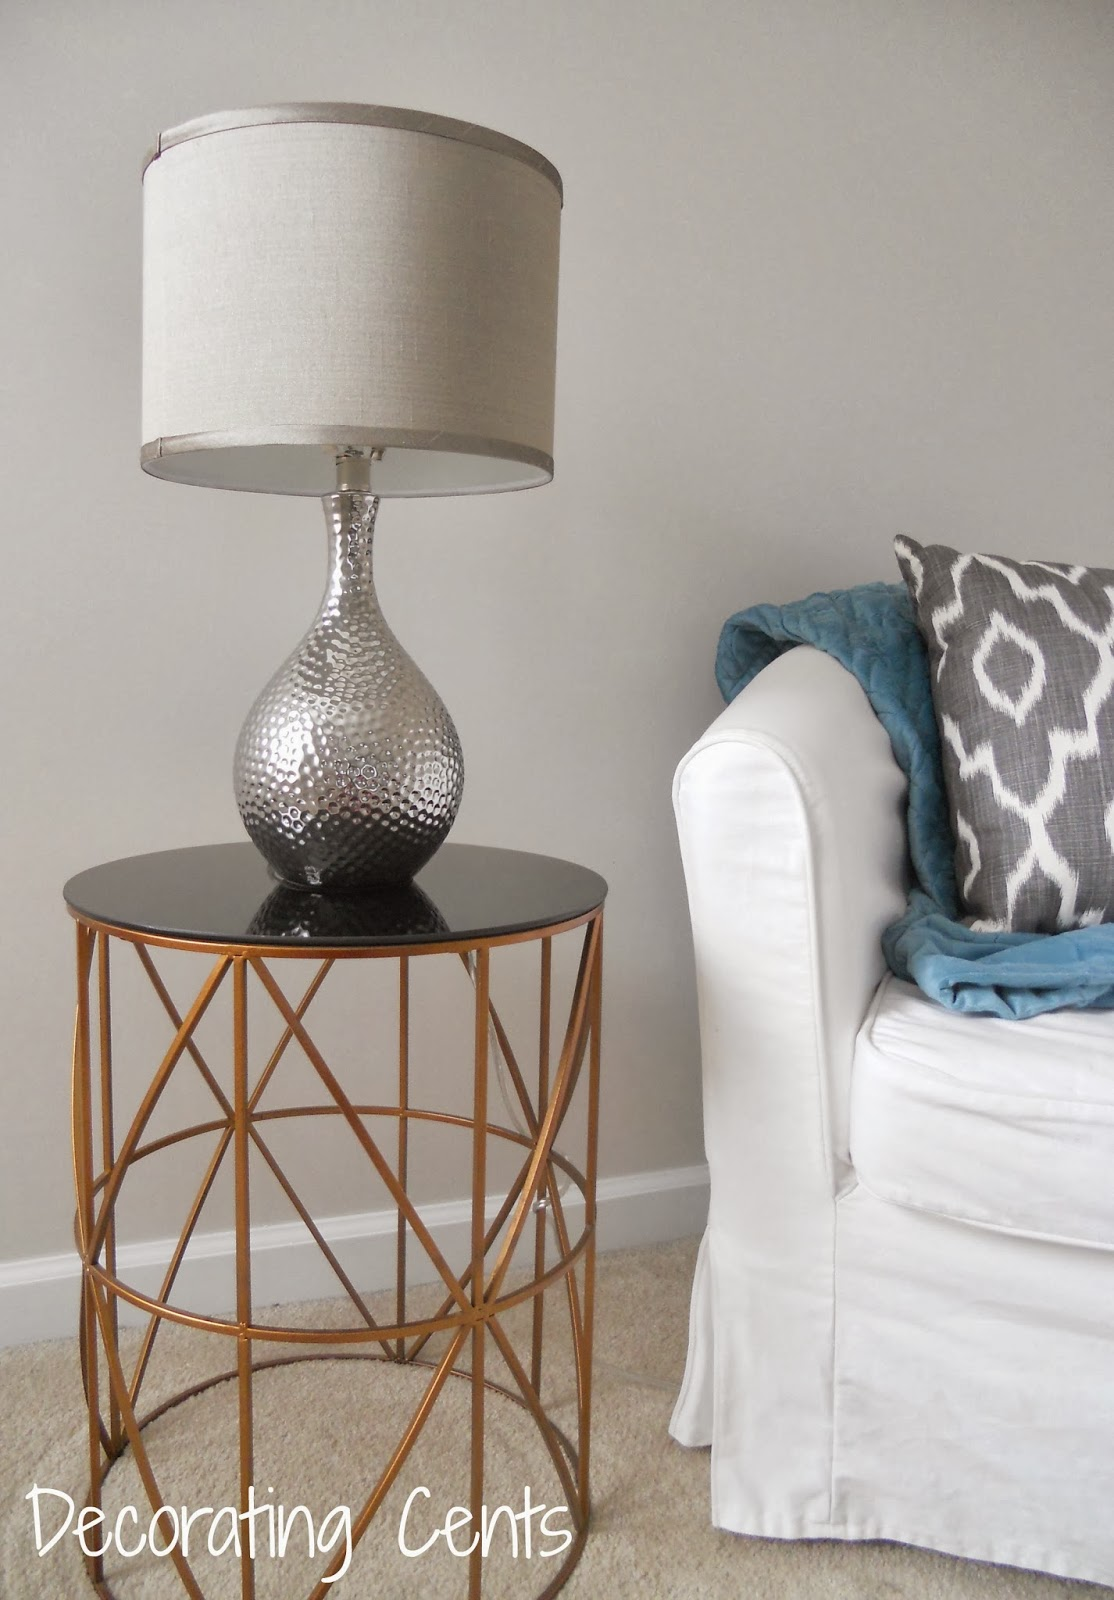 Decorating cents bedroom side table lamp for Side table decor bedroom